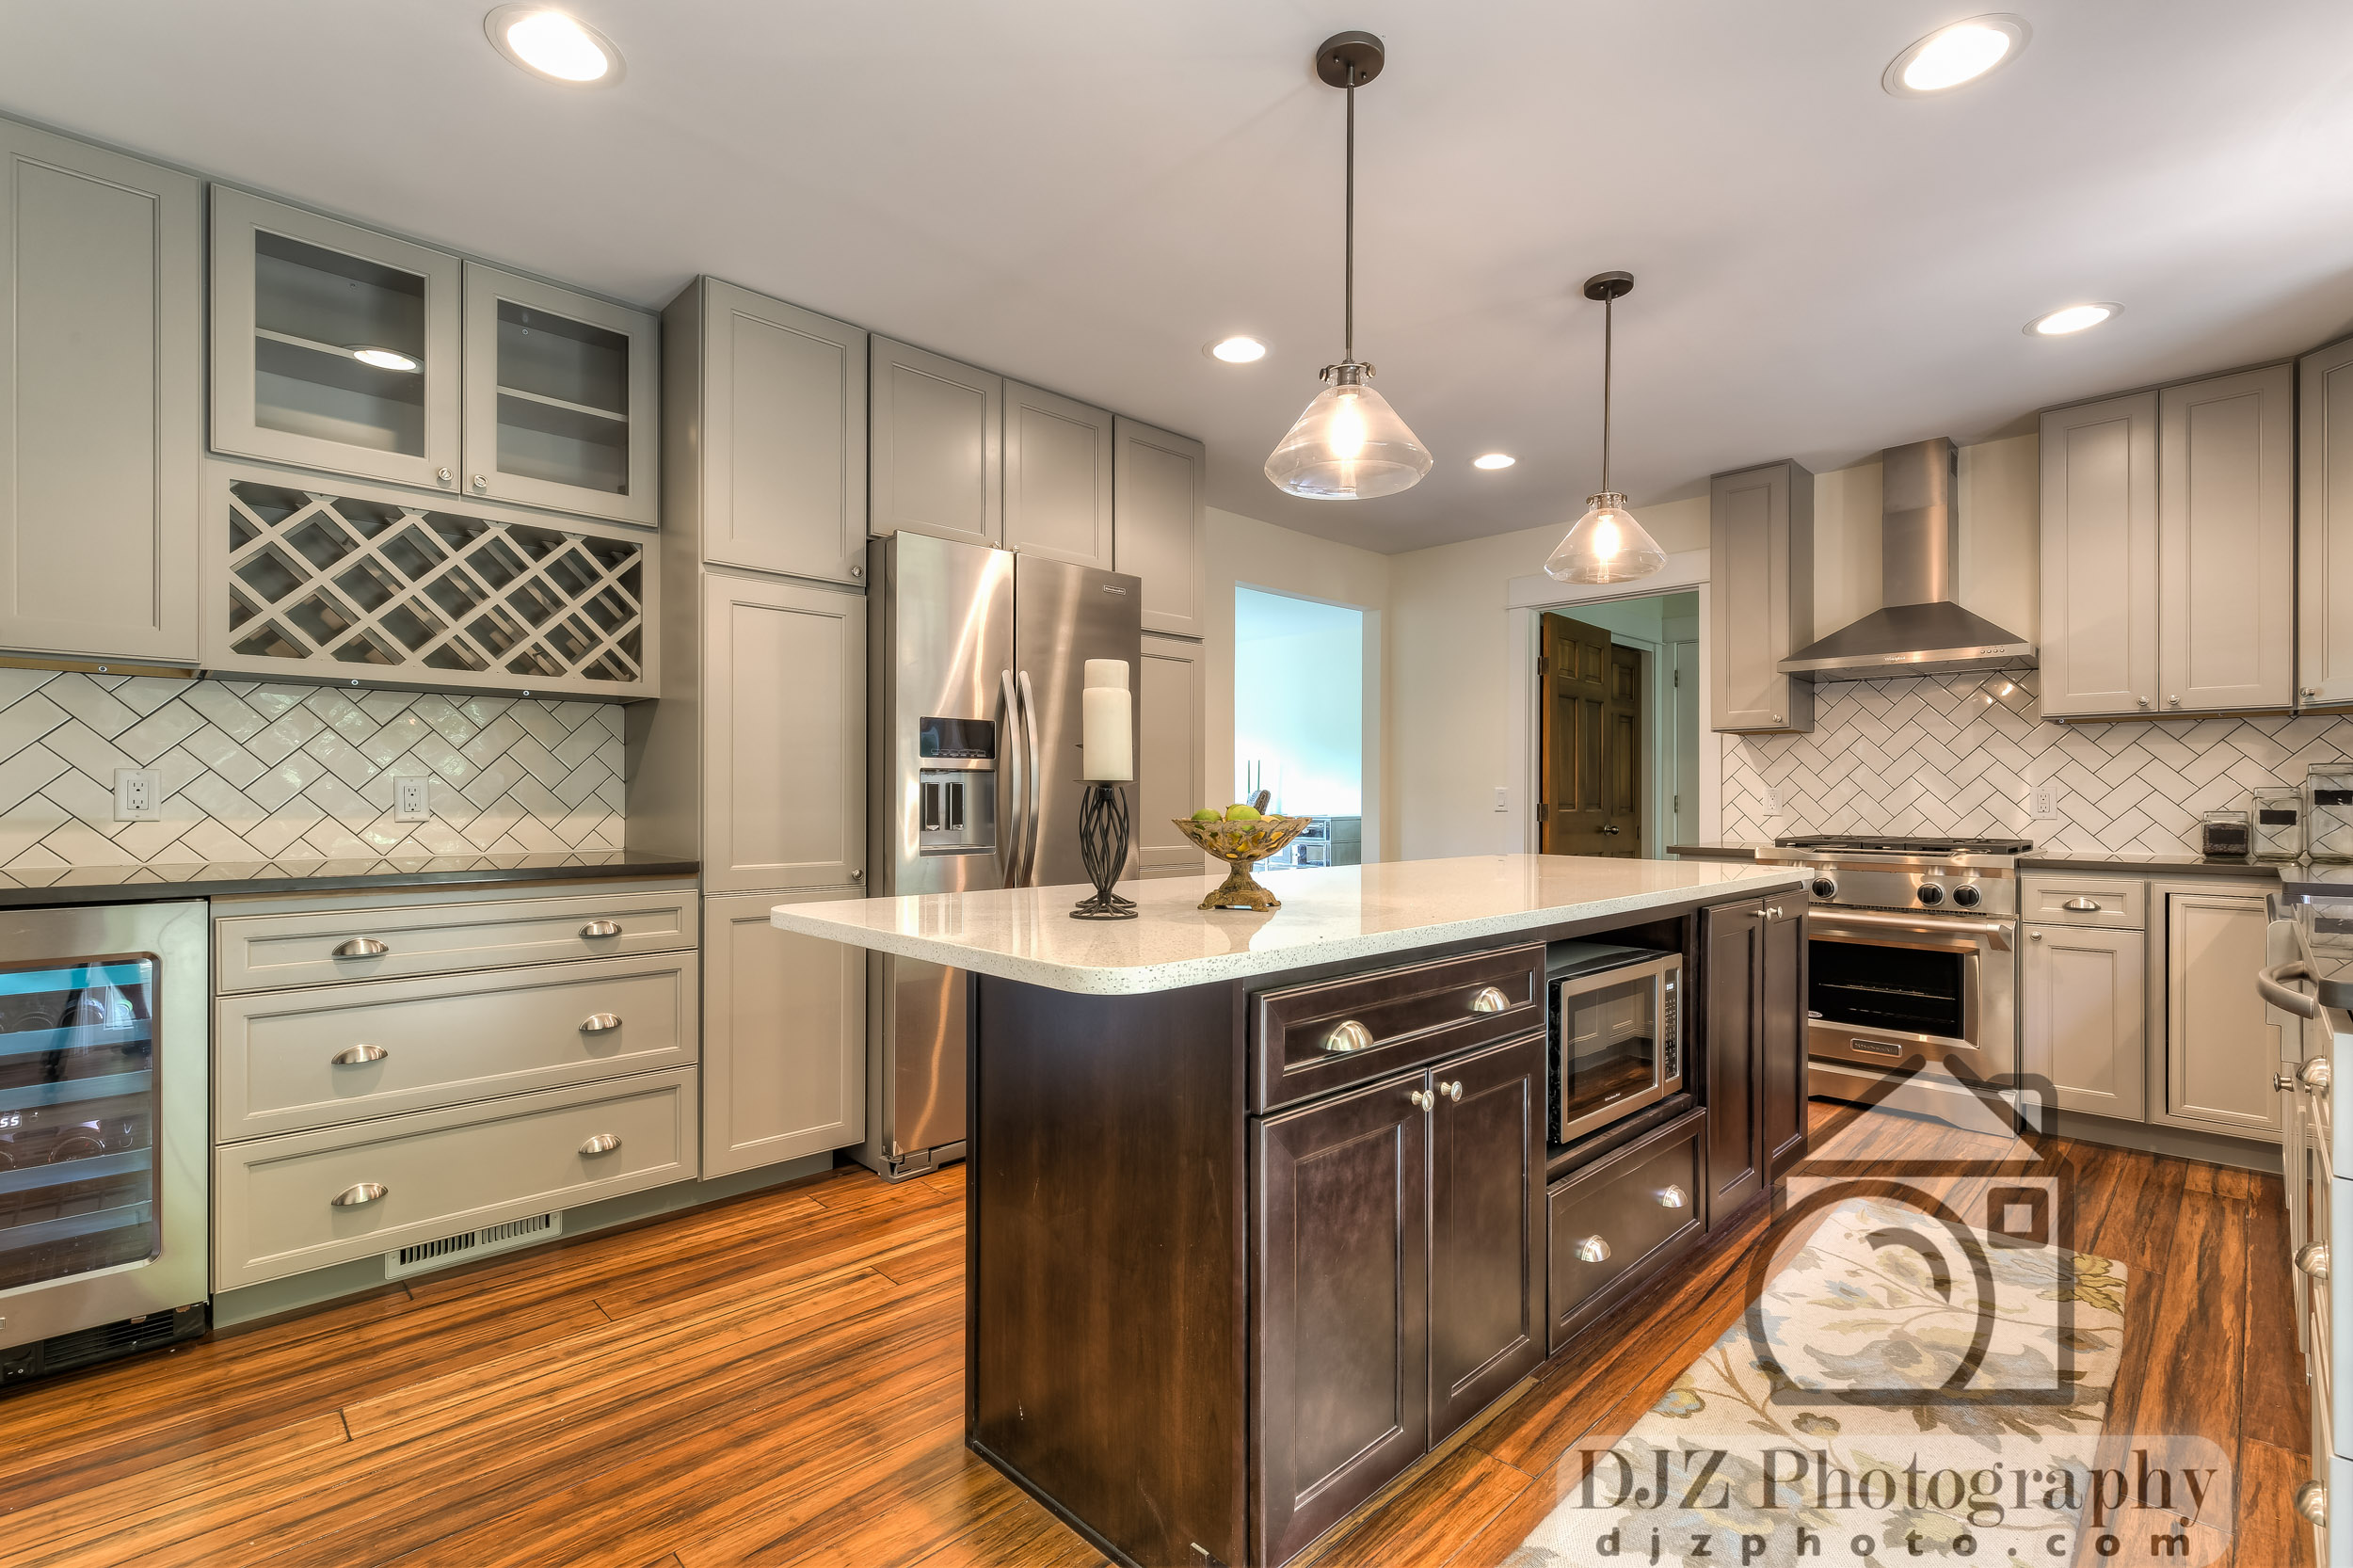 Kitchen 3 - Real Estate Photography